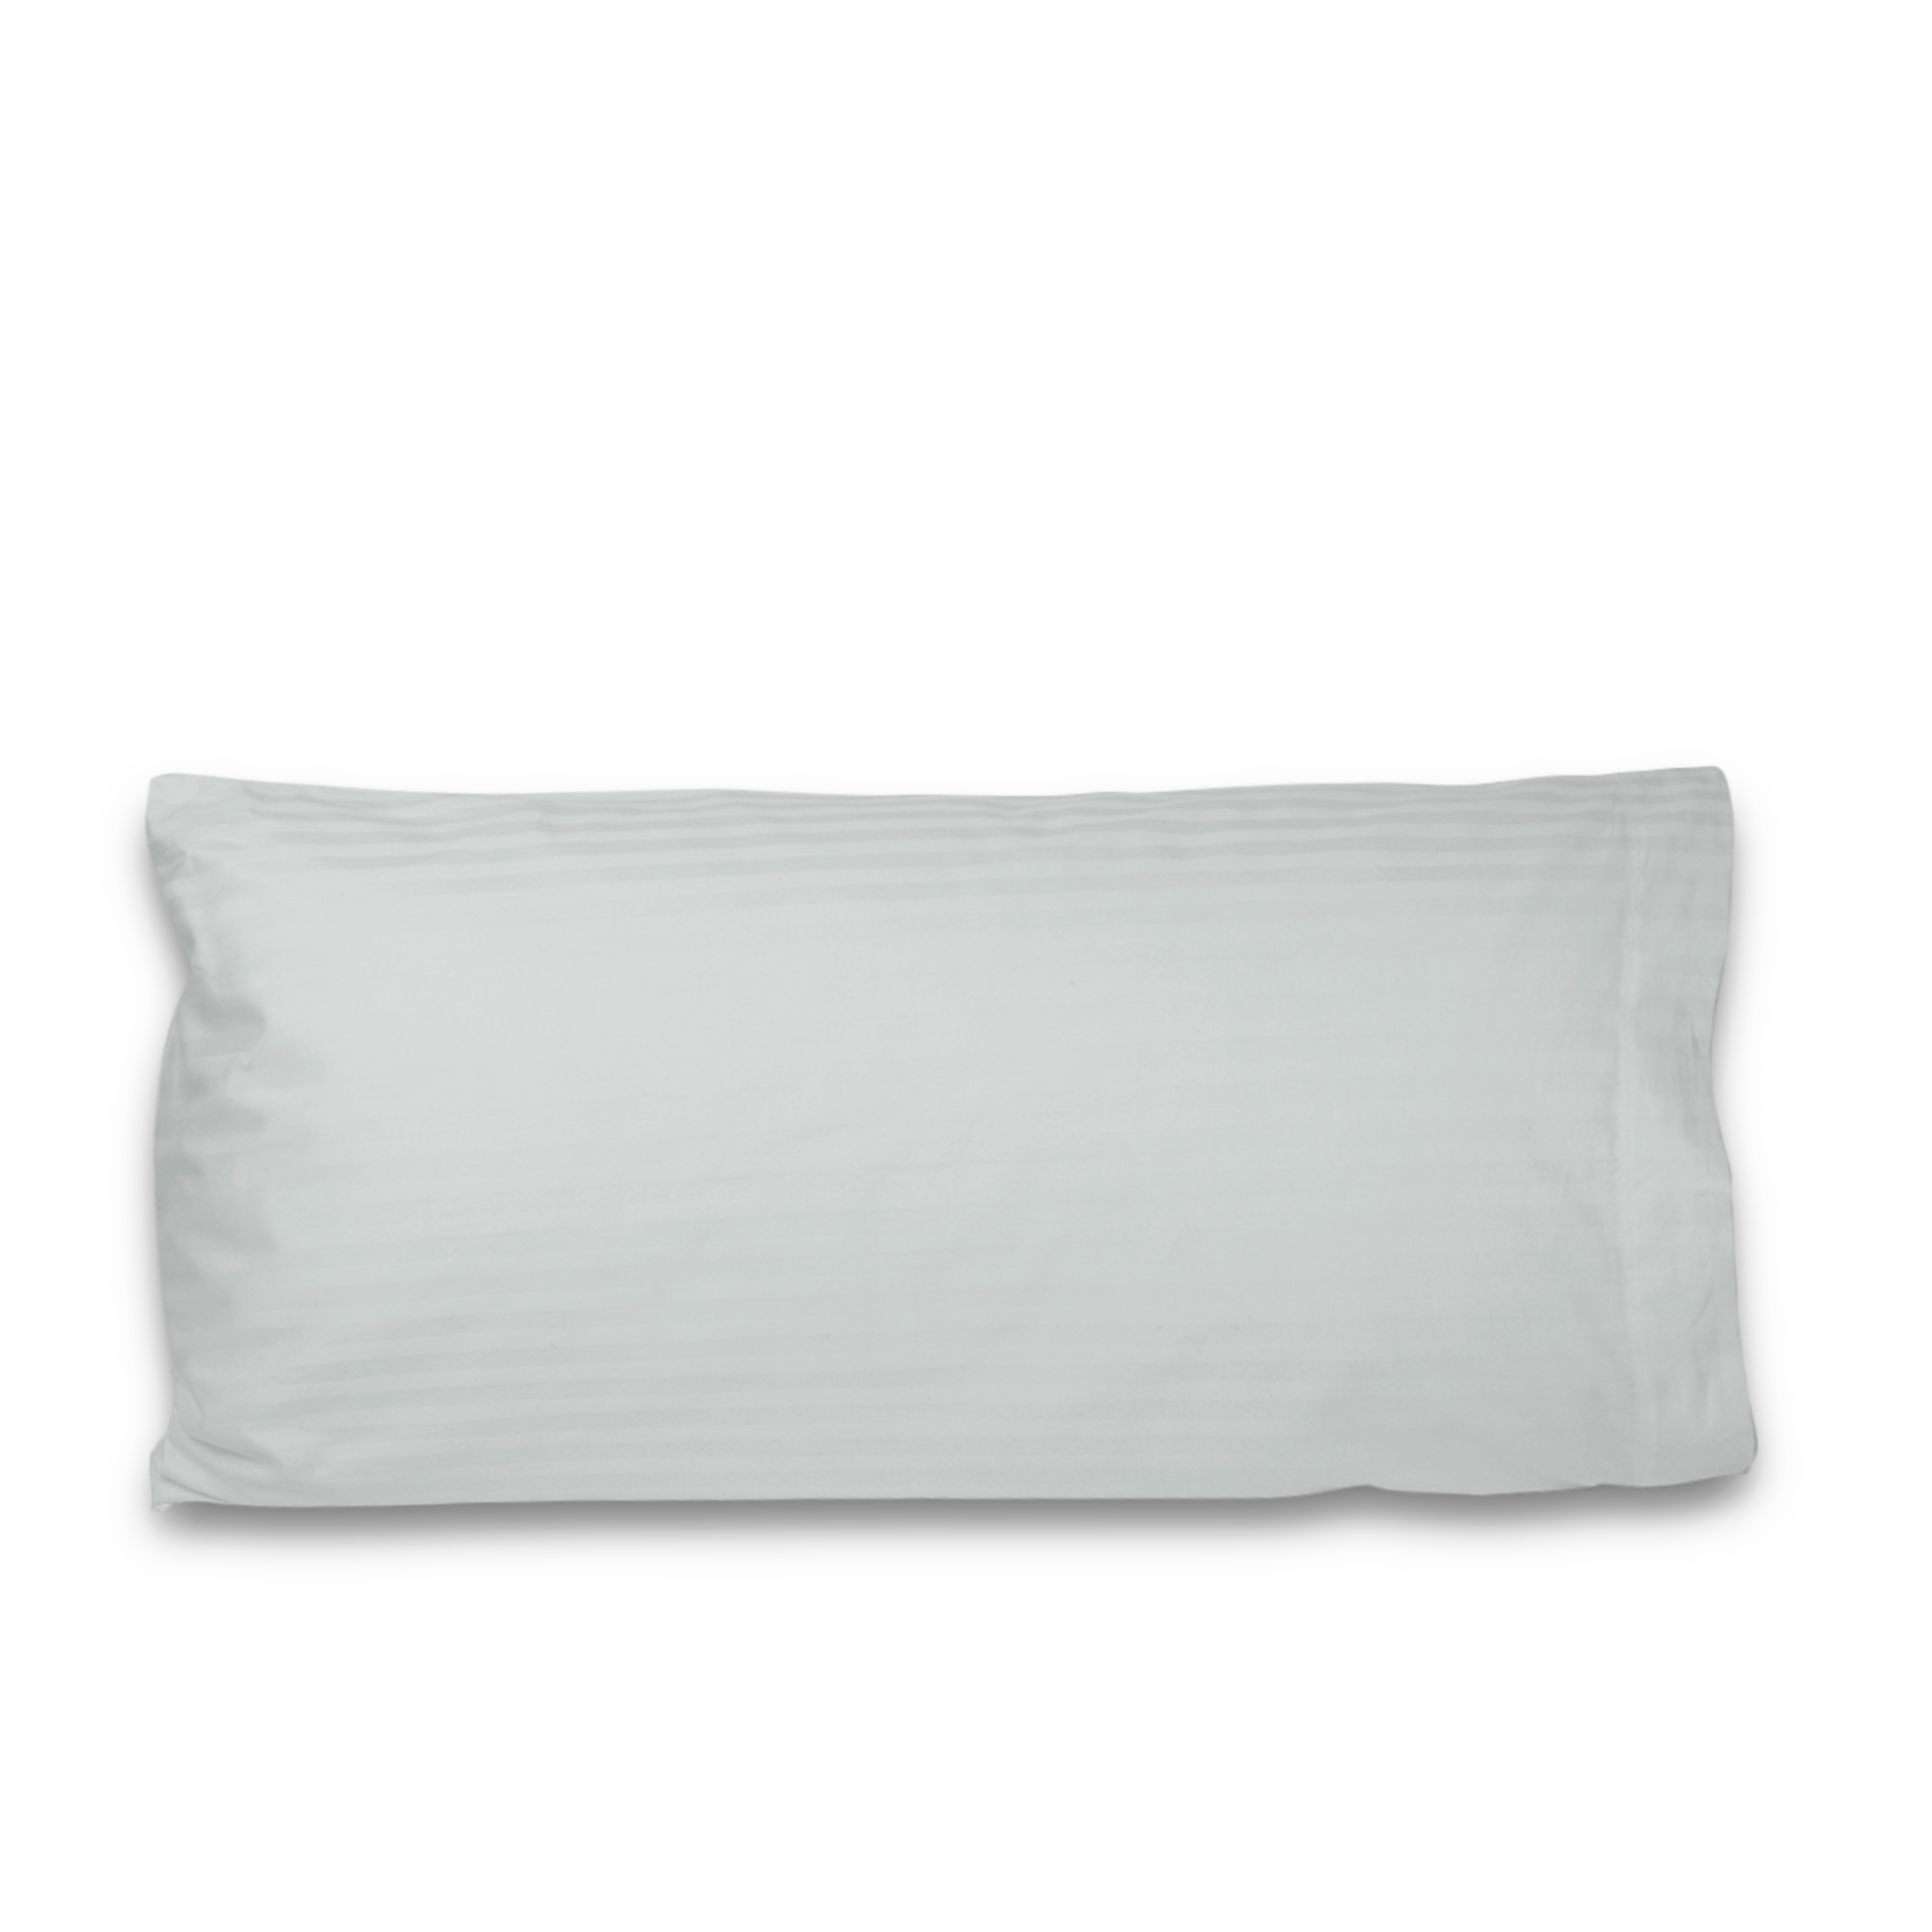 luxury hotel collection thick striped pillow cases queen size white set of 2 walmart com